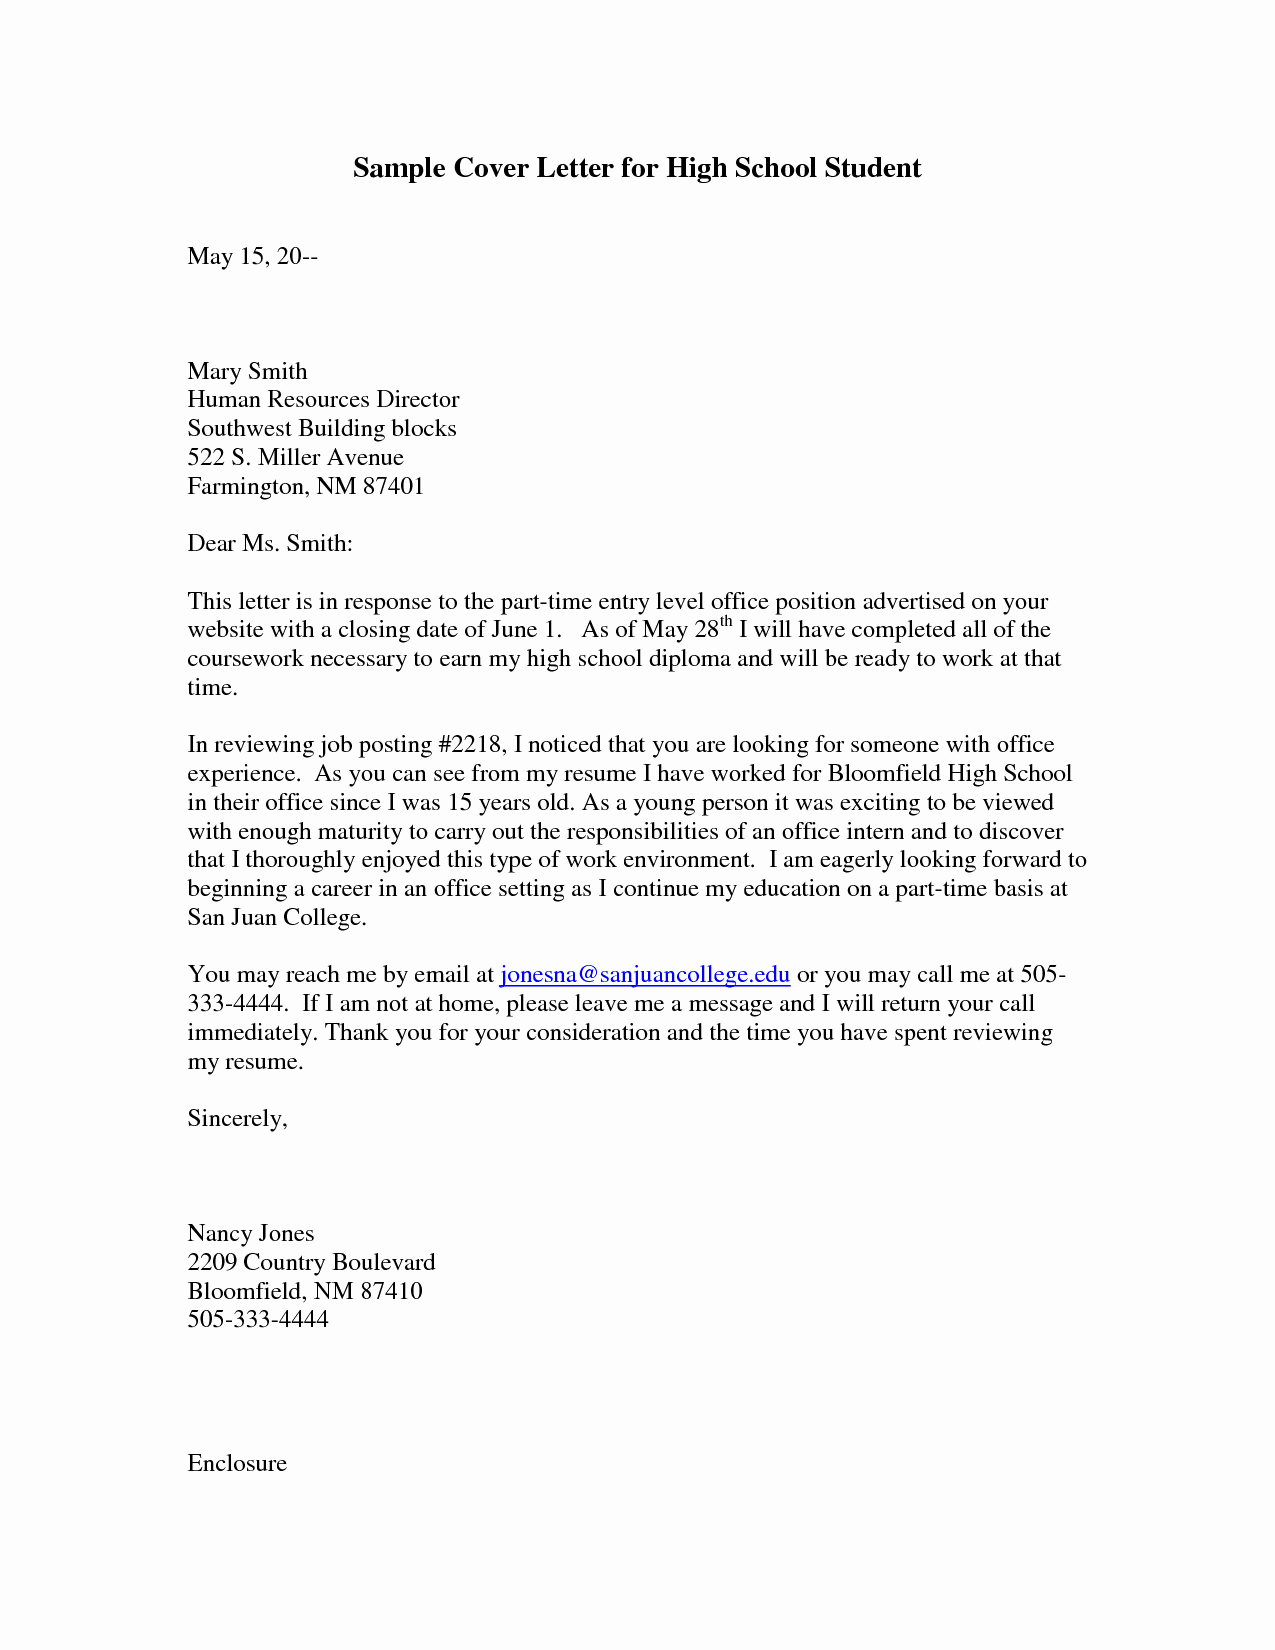 Cover Letter for First Job Beautiful Sample Cover Letter for High School Student with No Work